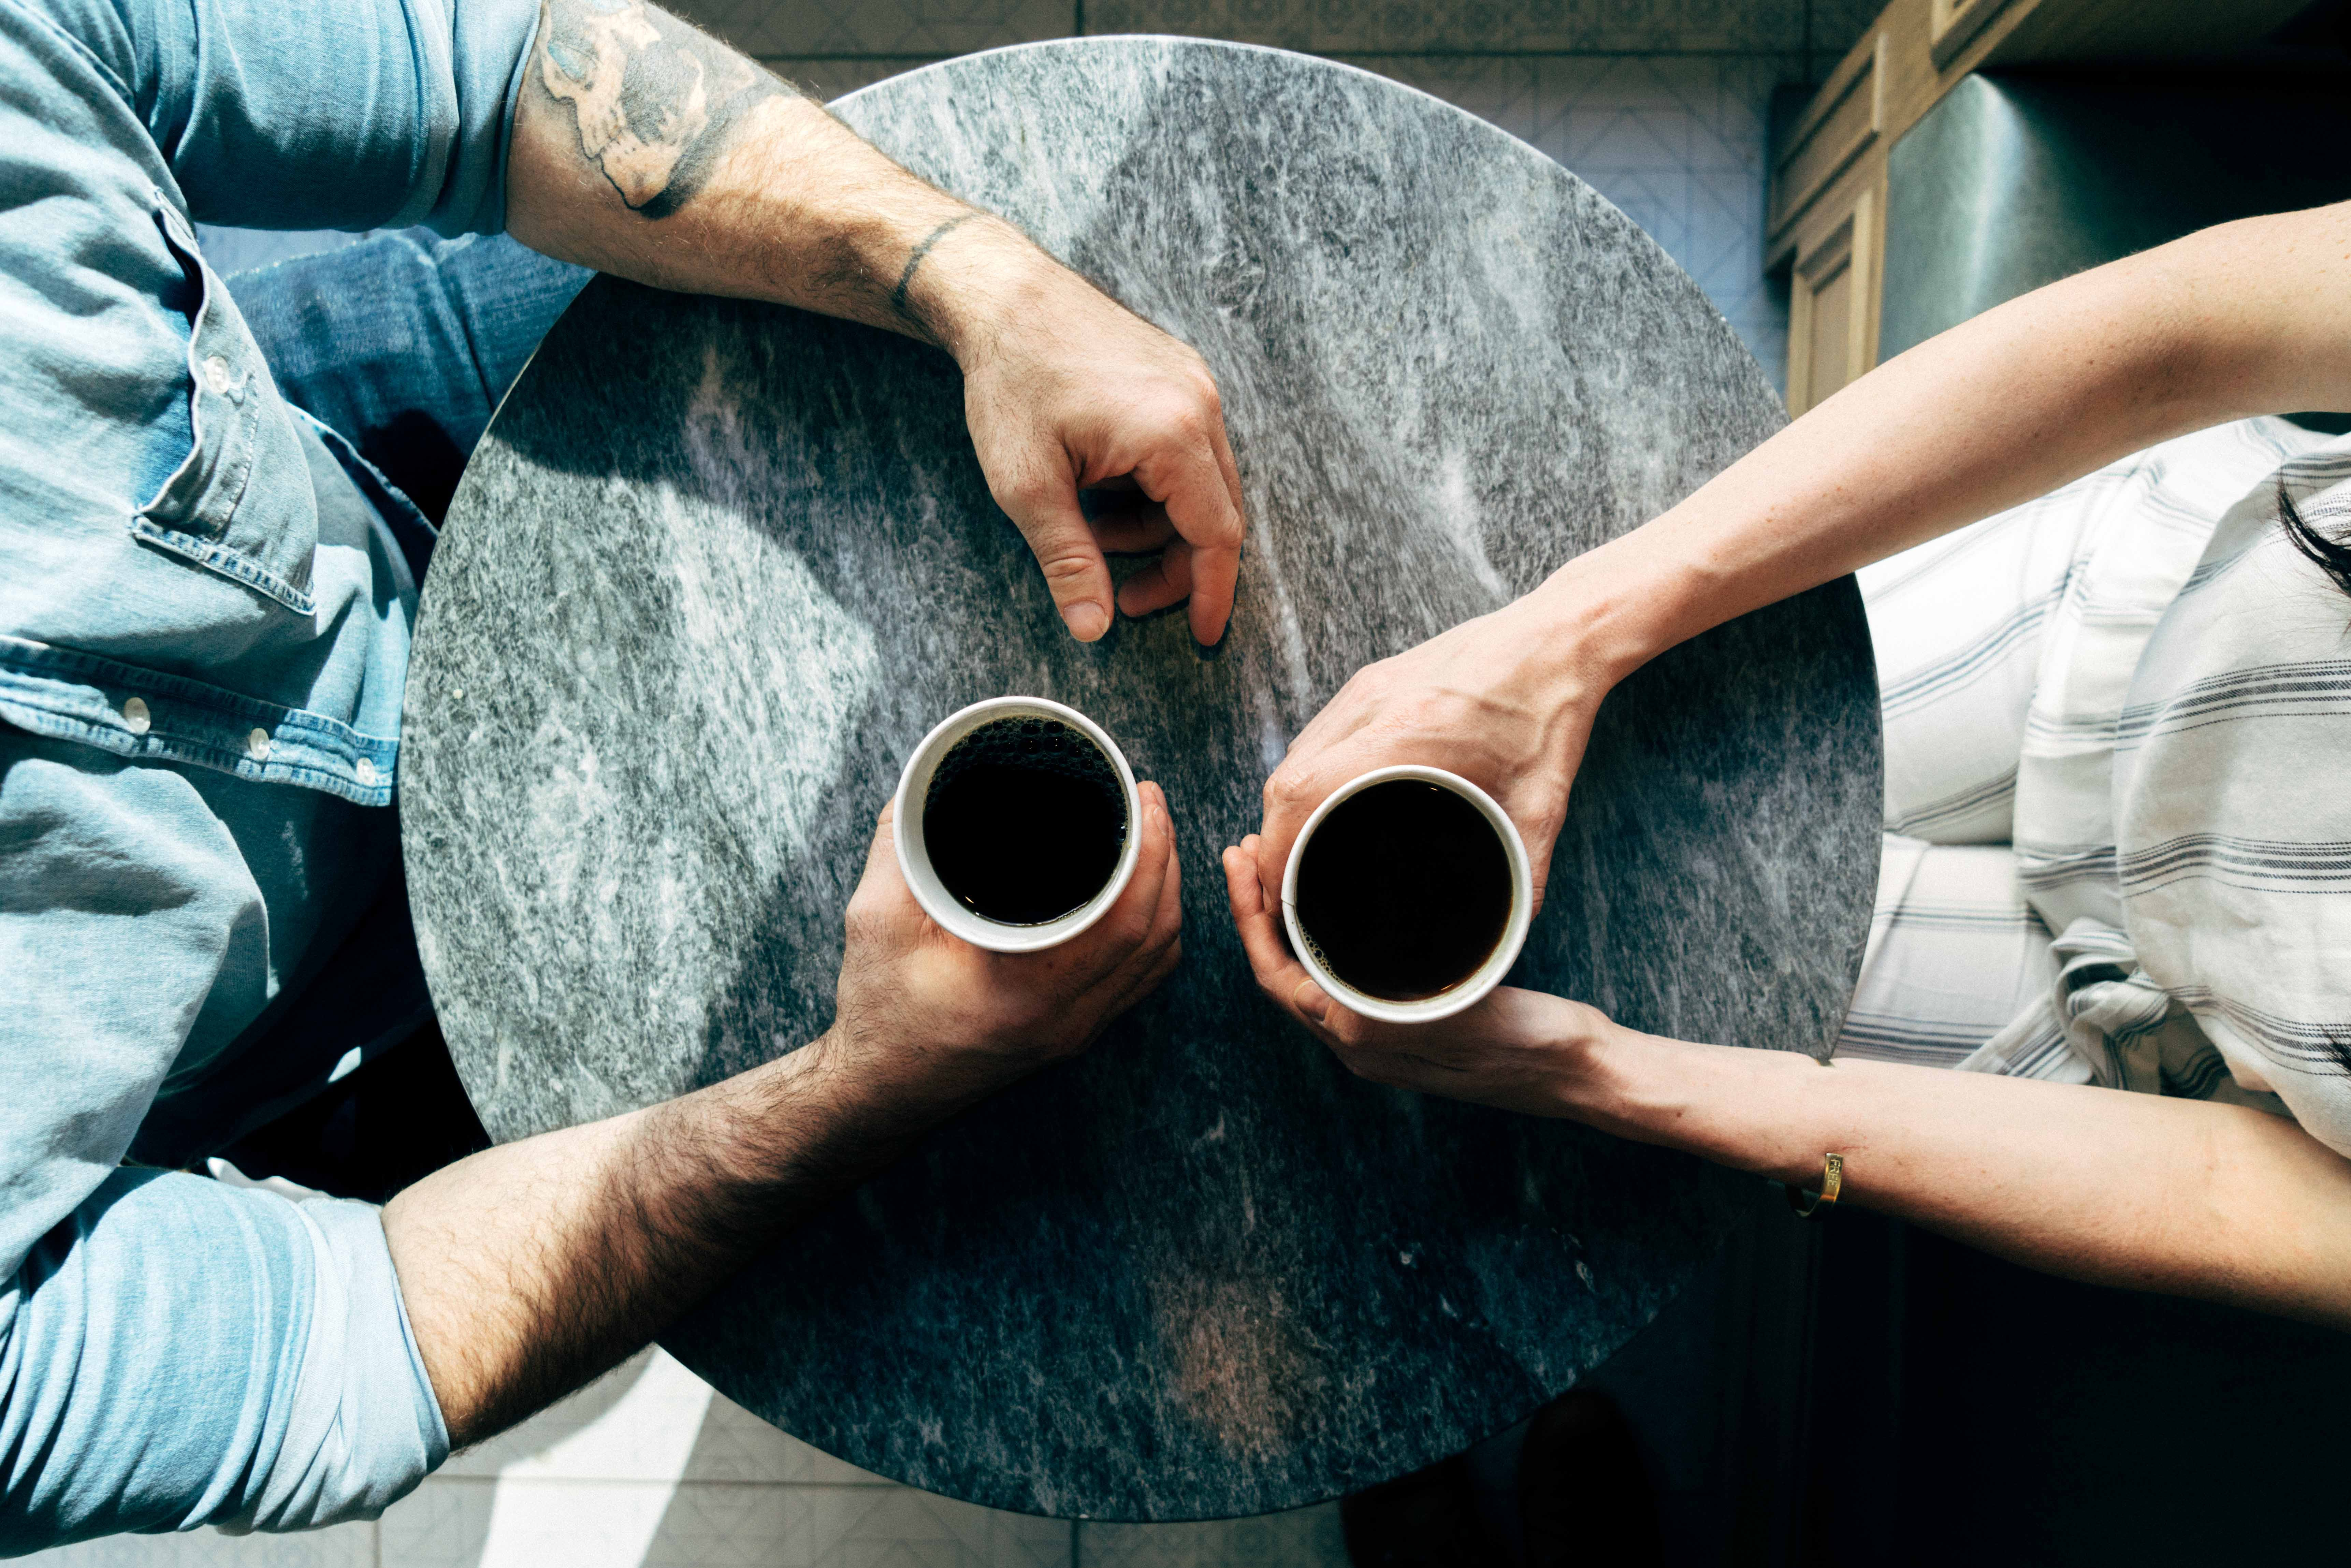 Two people talking over coffee